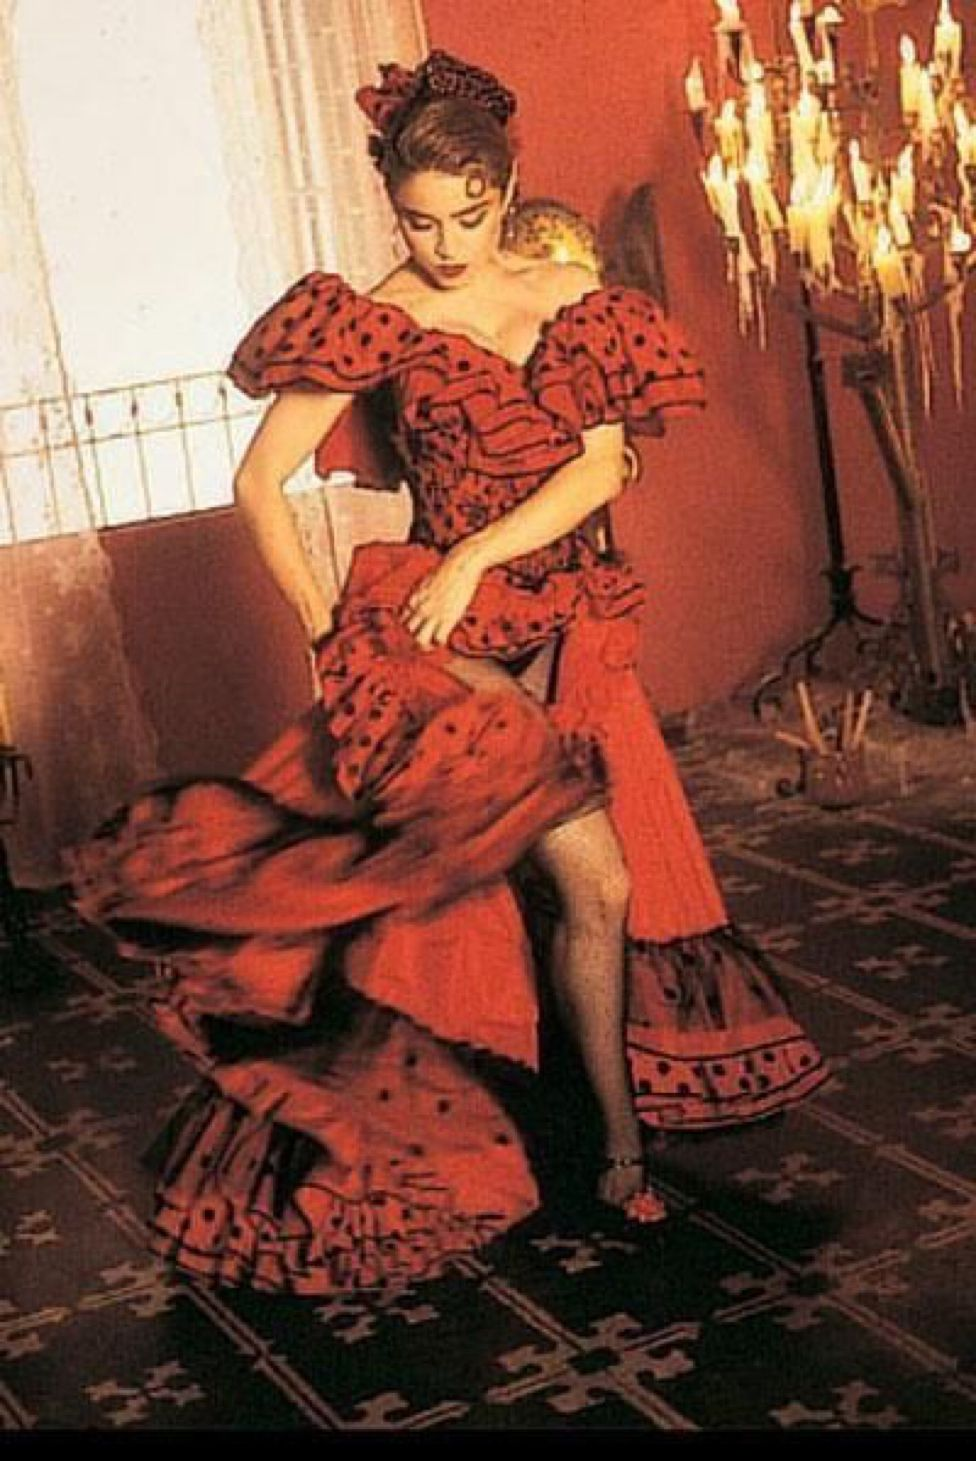 Madonna Wearing Red And Black Flamenco Style Dress In Her Music Video Clip For Her Song La Isla Bonita 1987 Madonna Madonna Fashion Lady Madonna